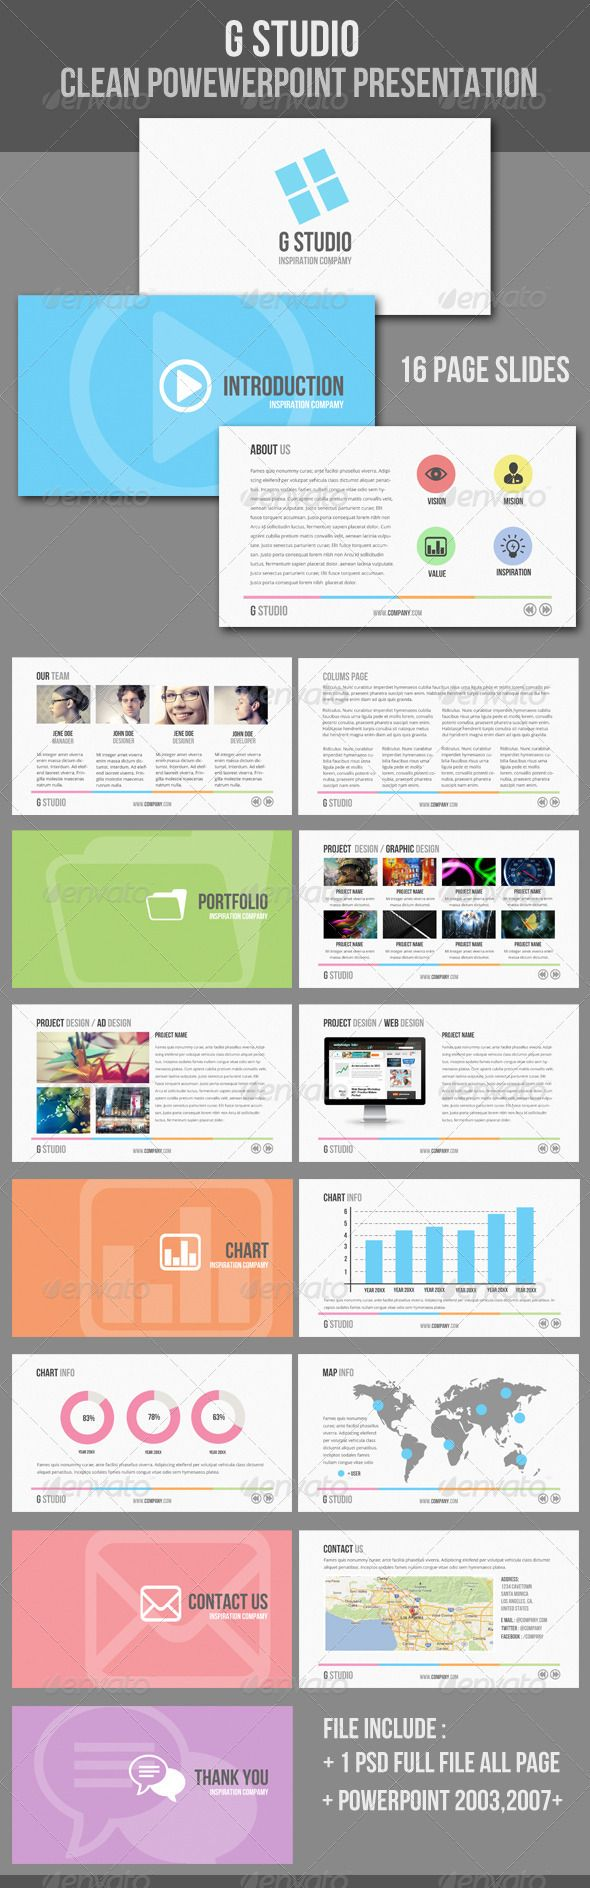 Clean #Powerpoint #Presentation Template